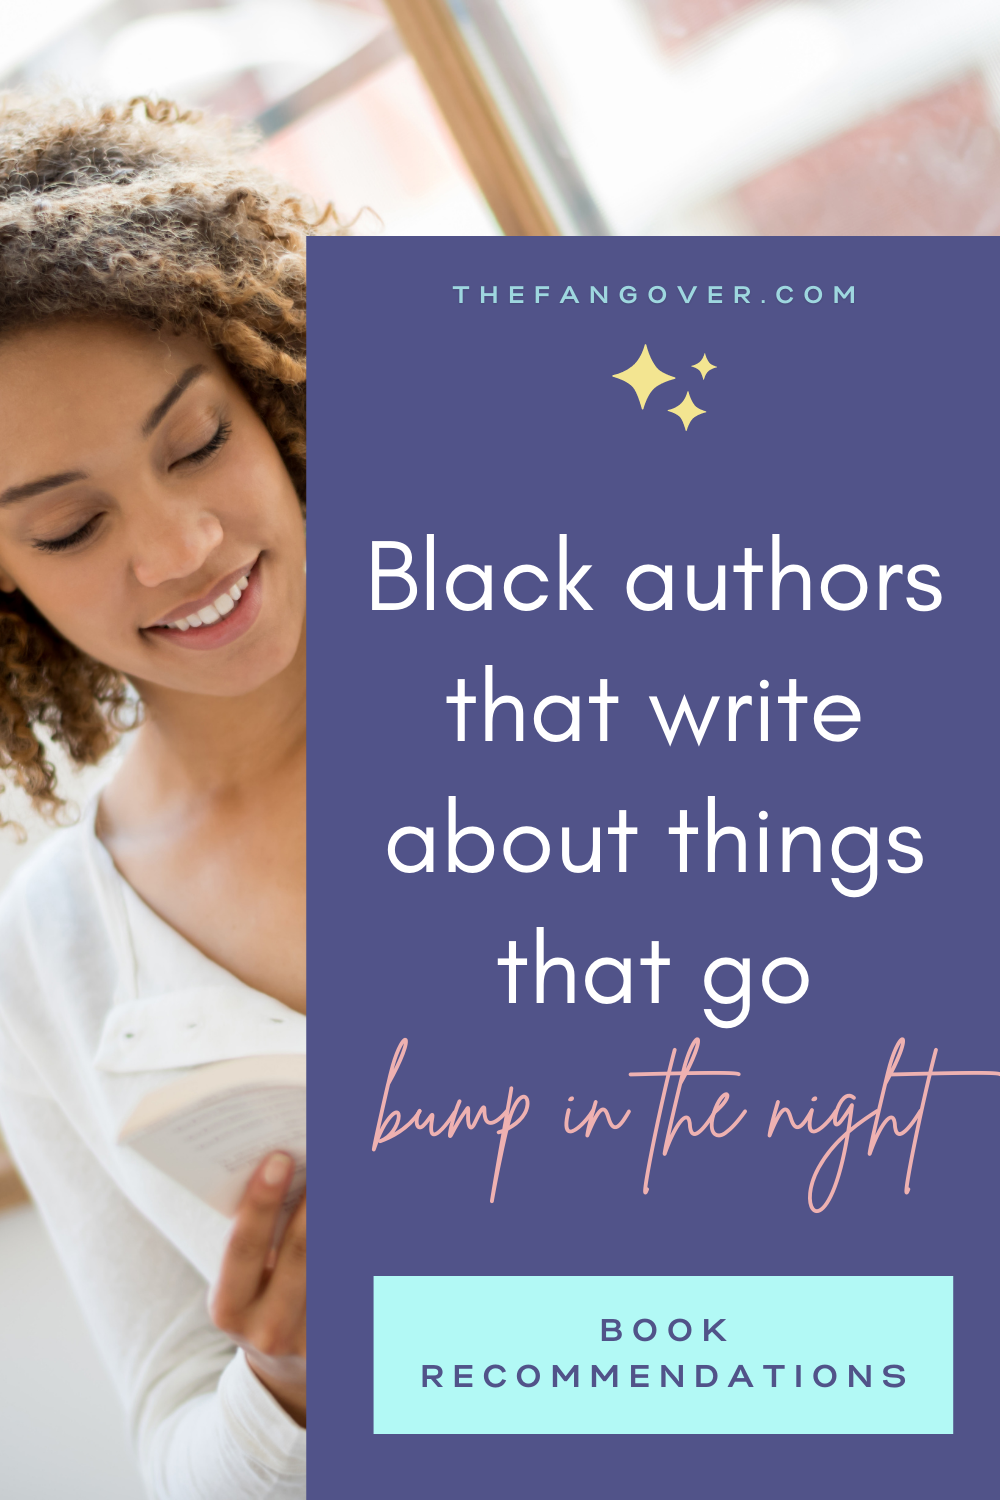 Black Authors that Write the Paranormal